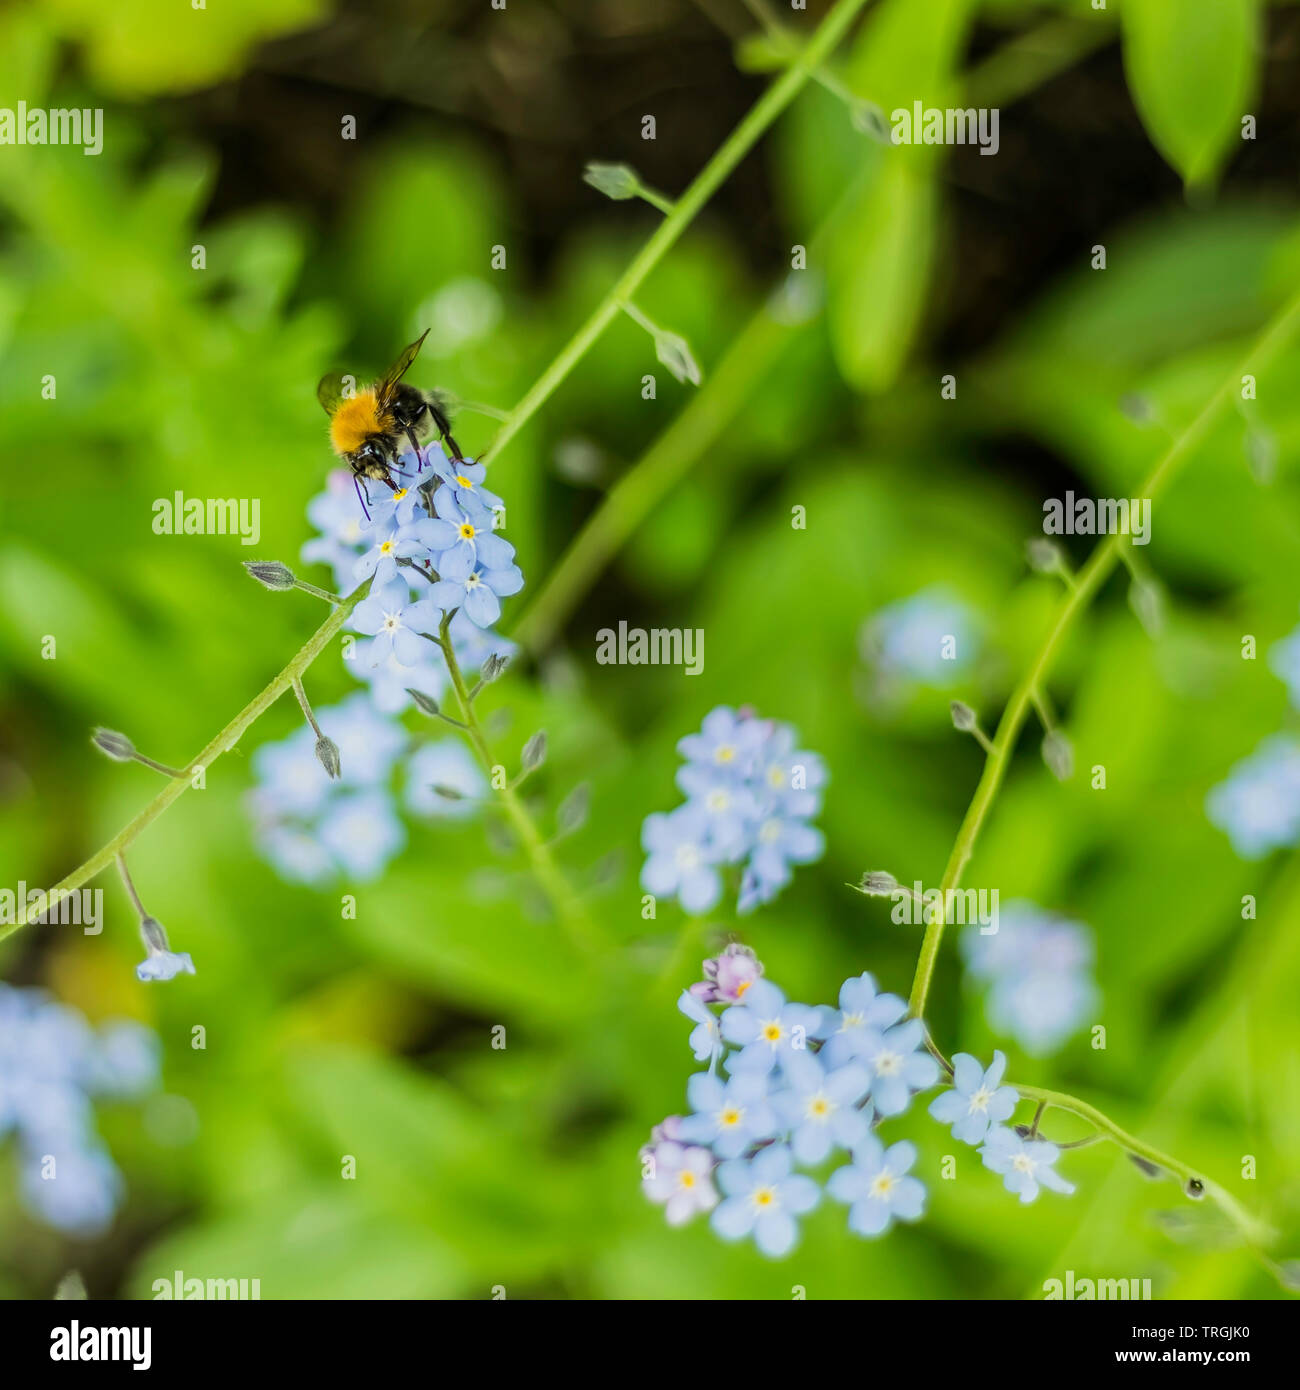 Bumblebee Drawing Nectar From A Forget Me Not Flower - Stock Image